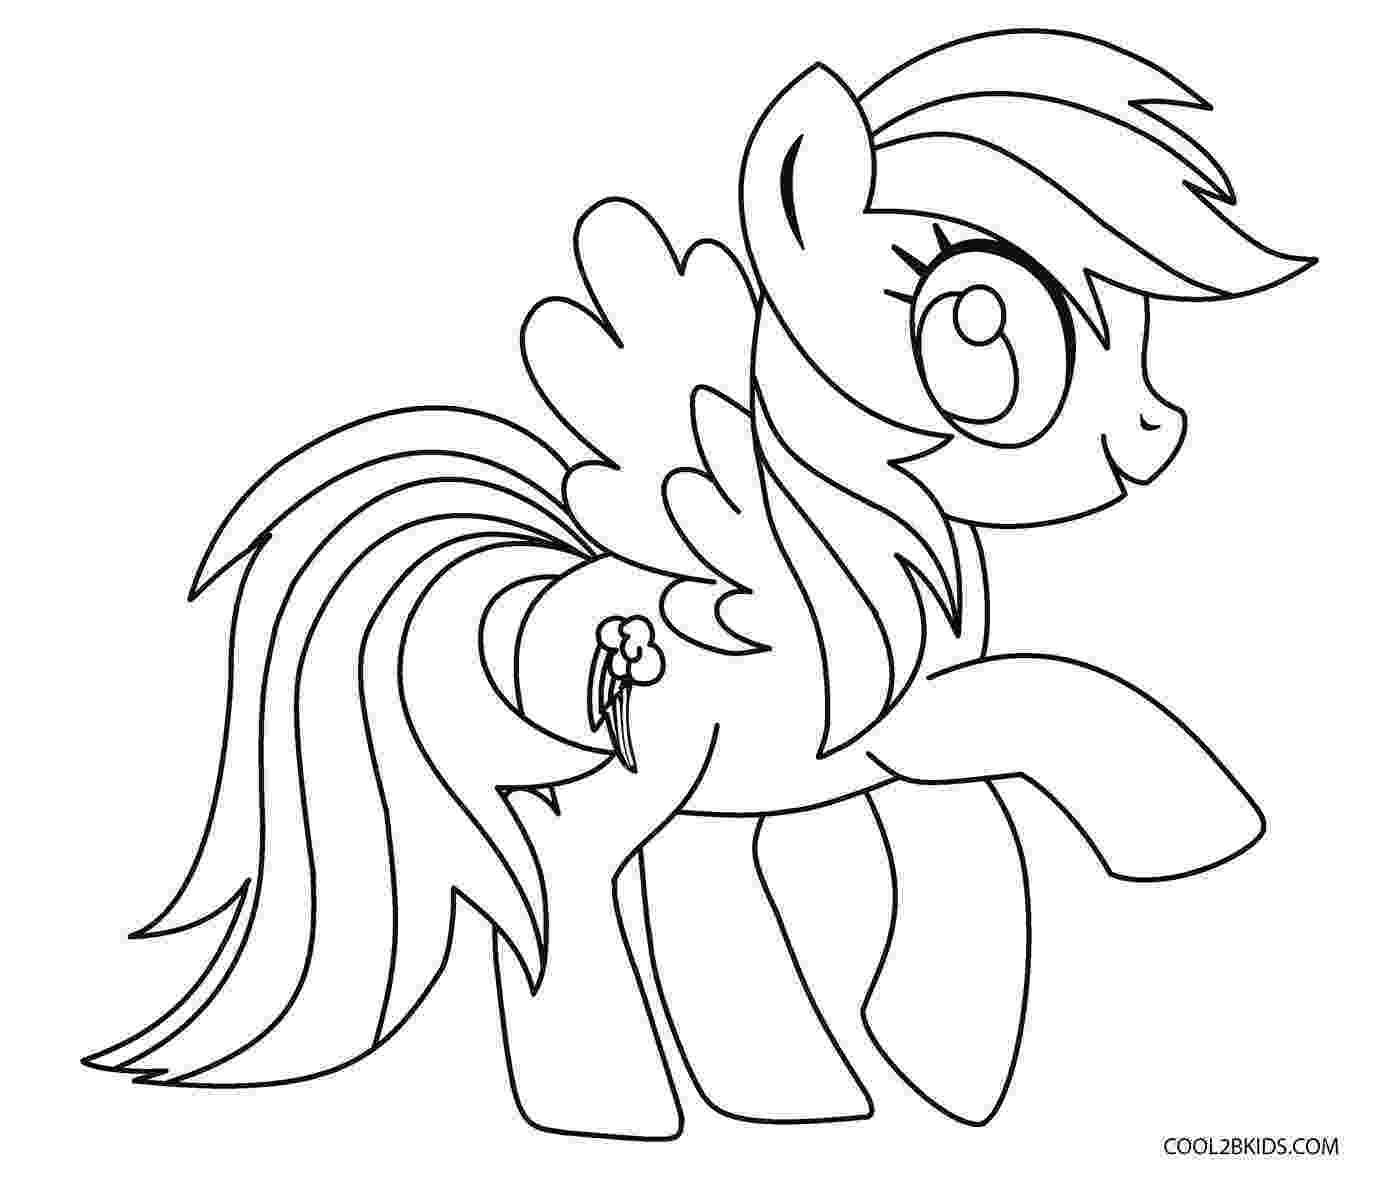 mlp coloring book games my little pony applejack coloring pages team colors book coloring mlp games